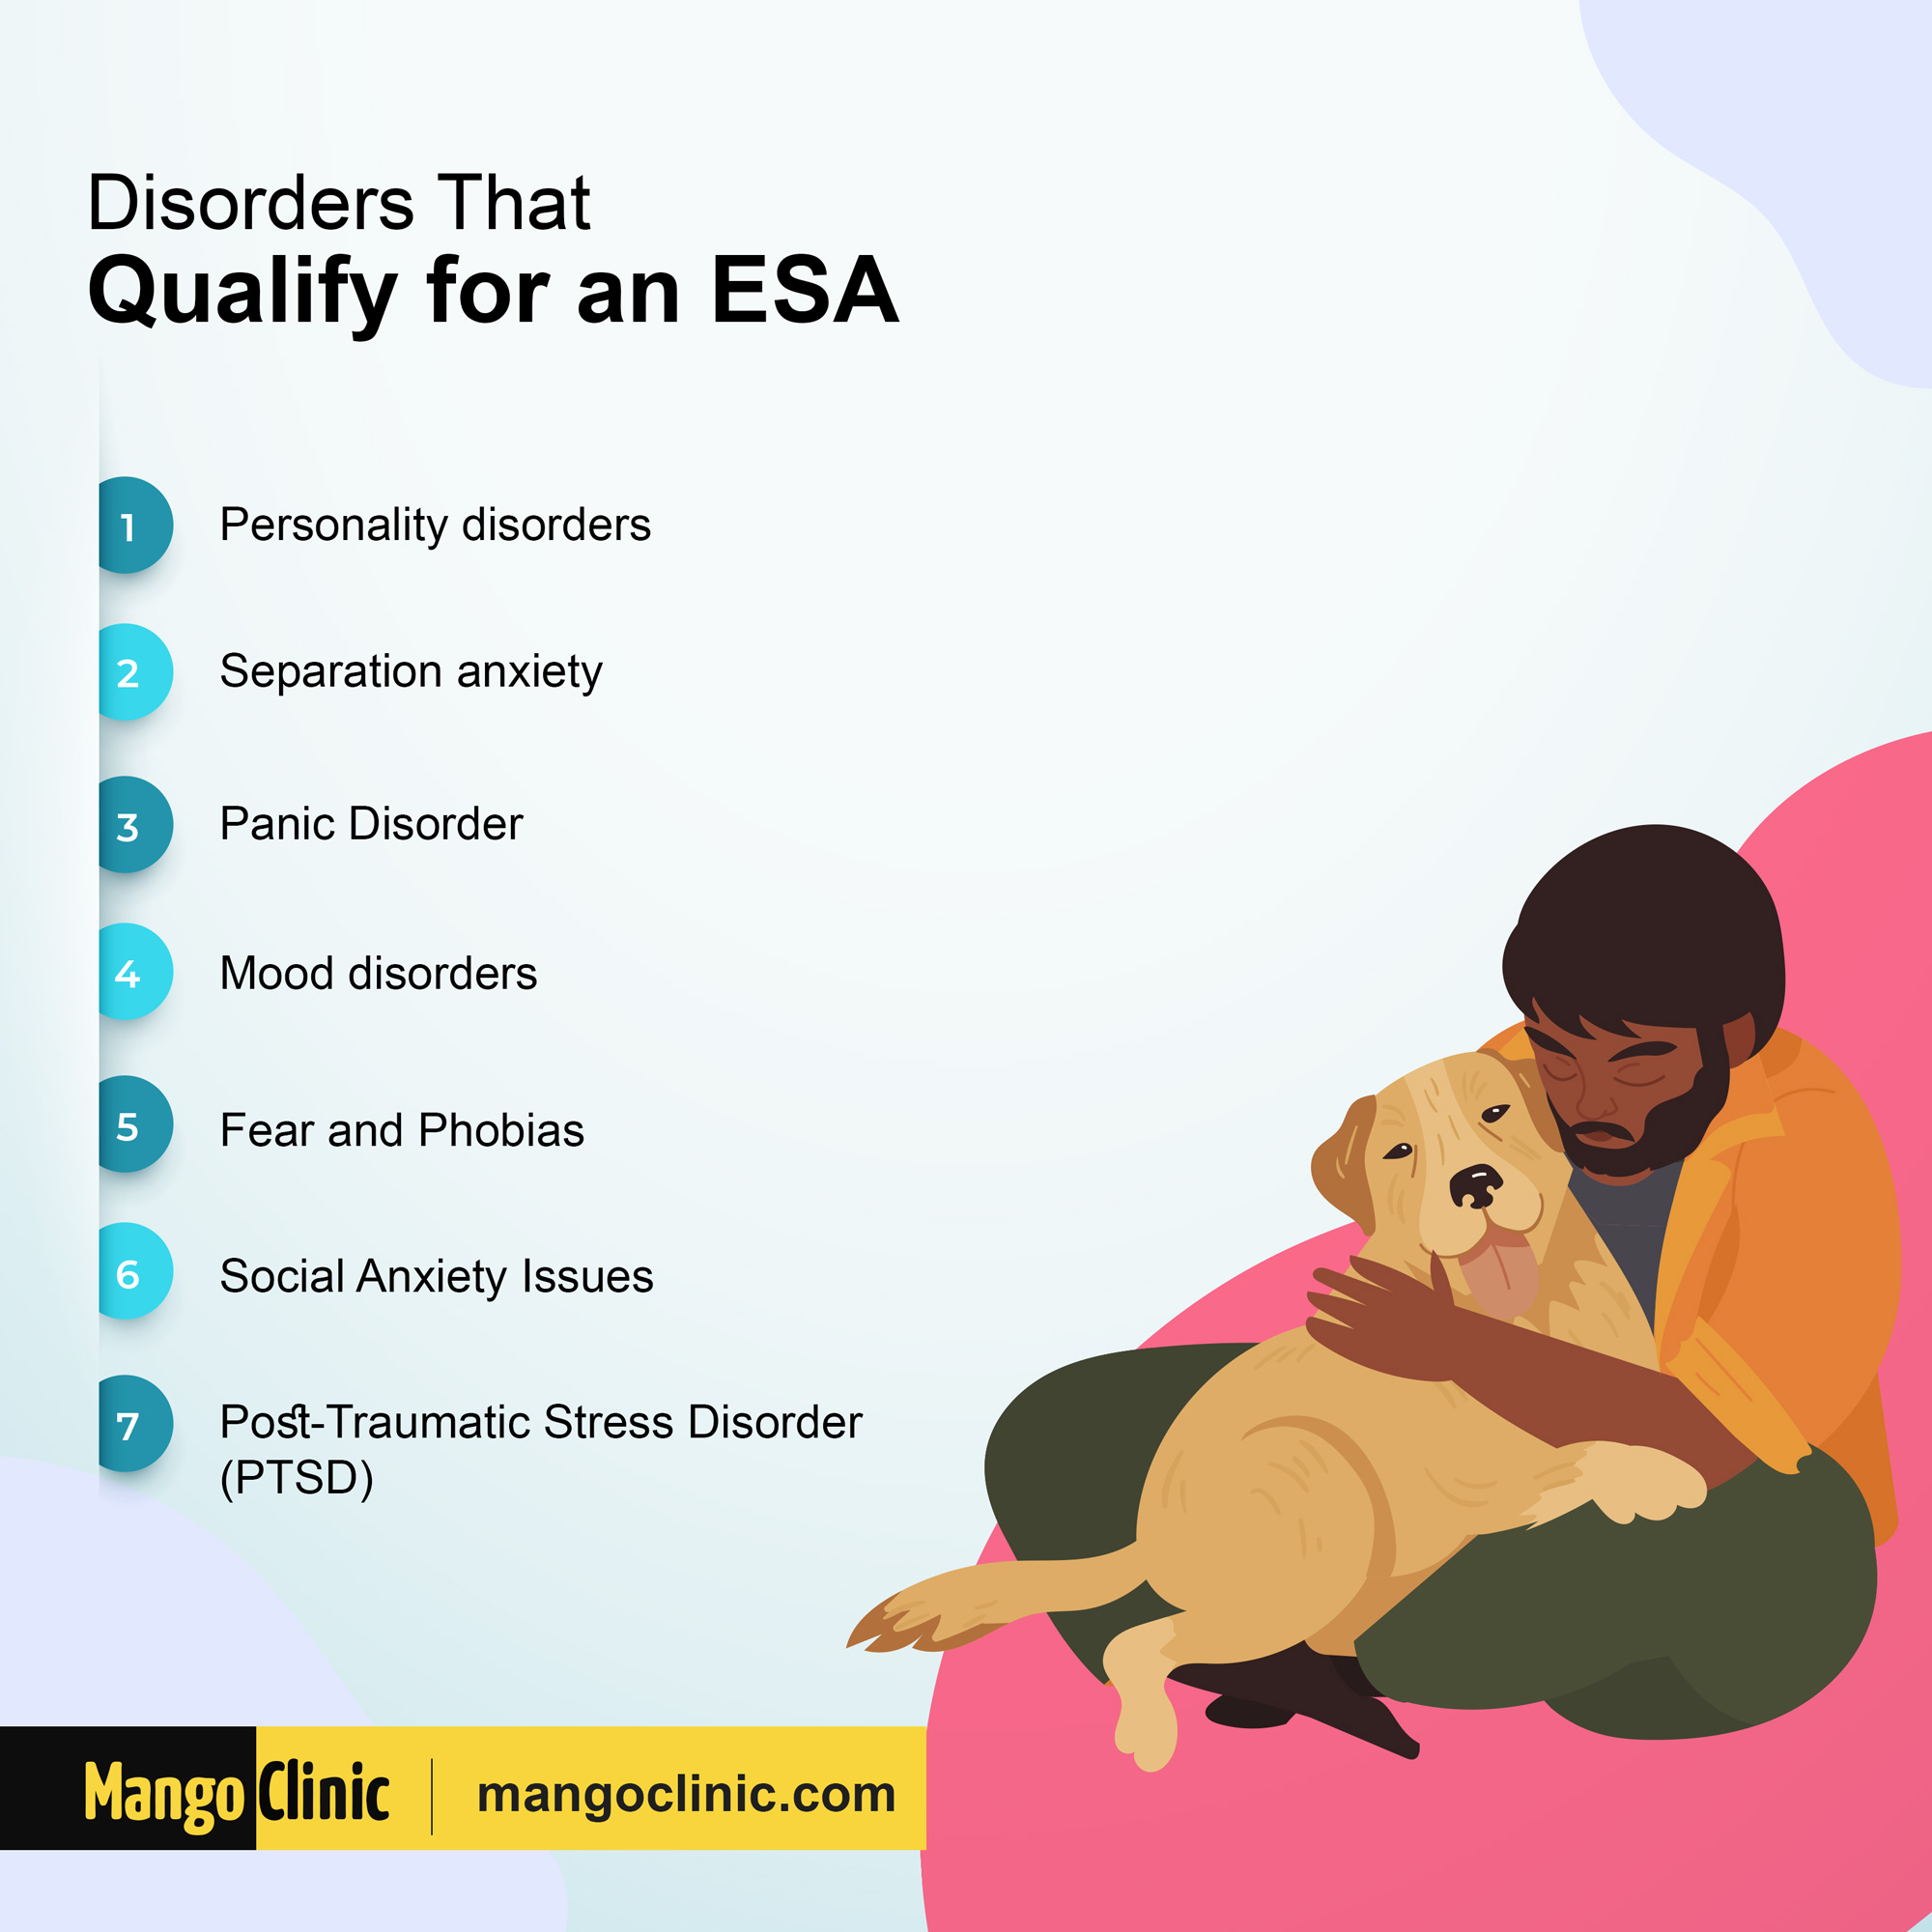 Disorders that qualify you for ESA